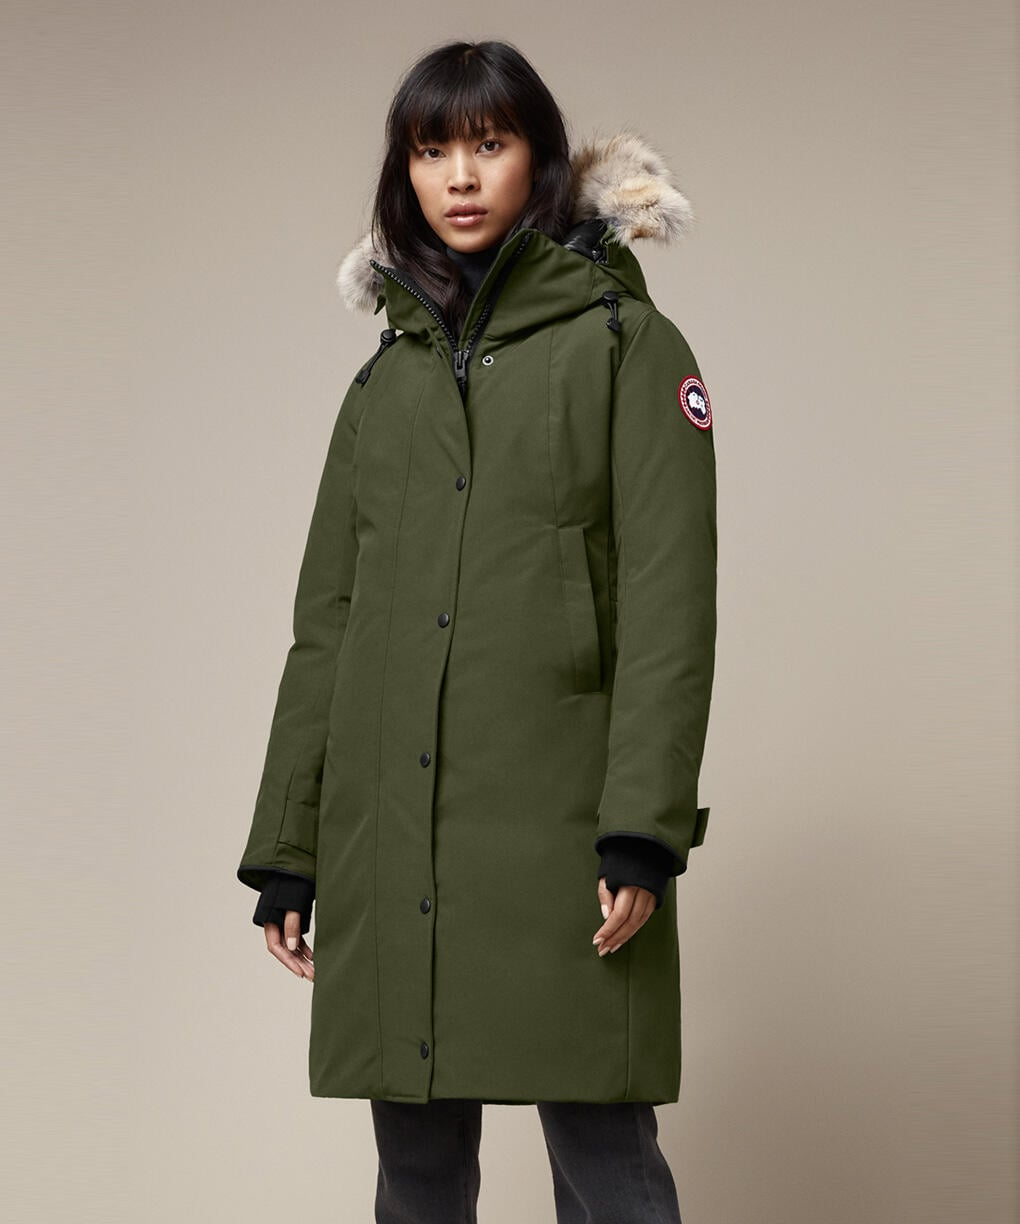 SHERBROOKE PARKA FUSION FIT